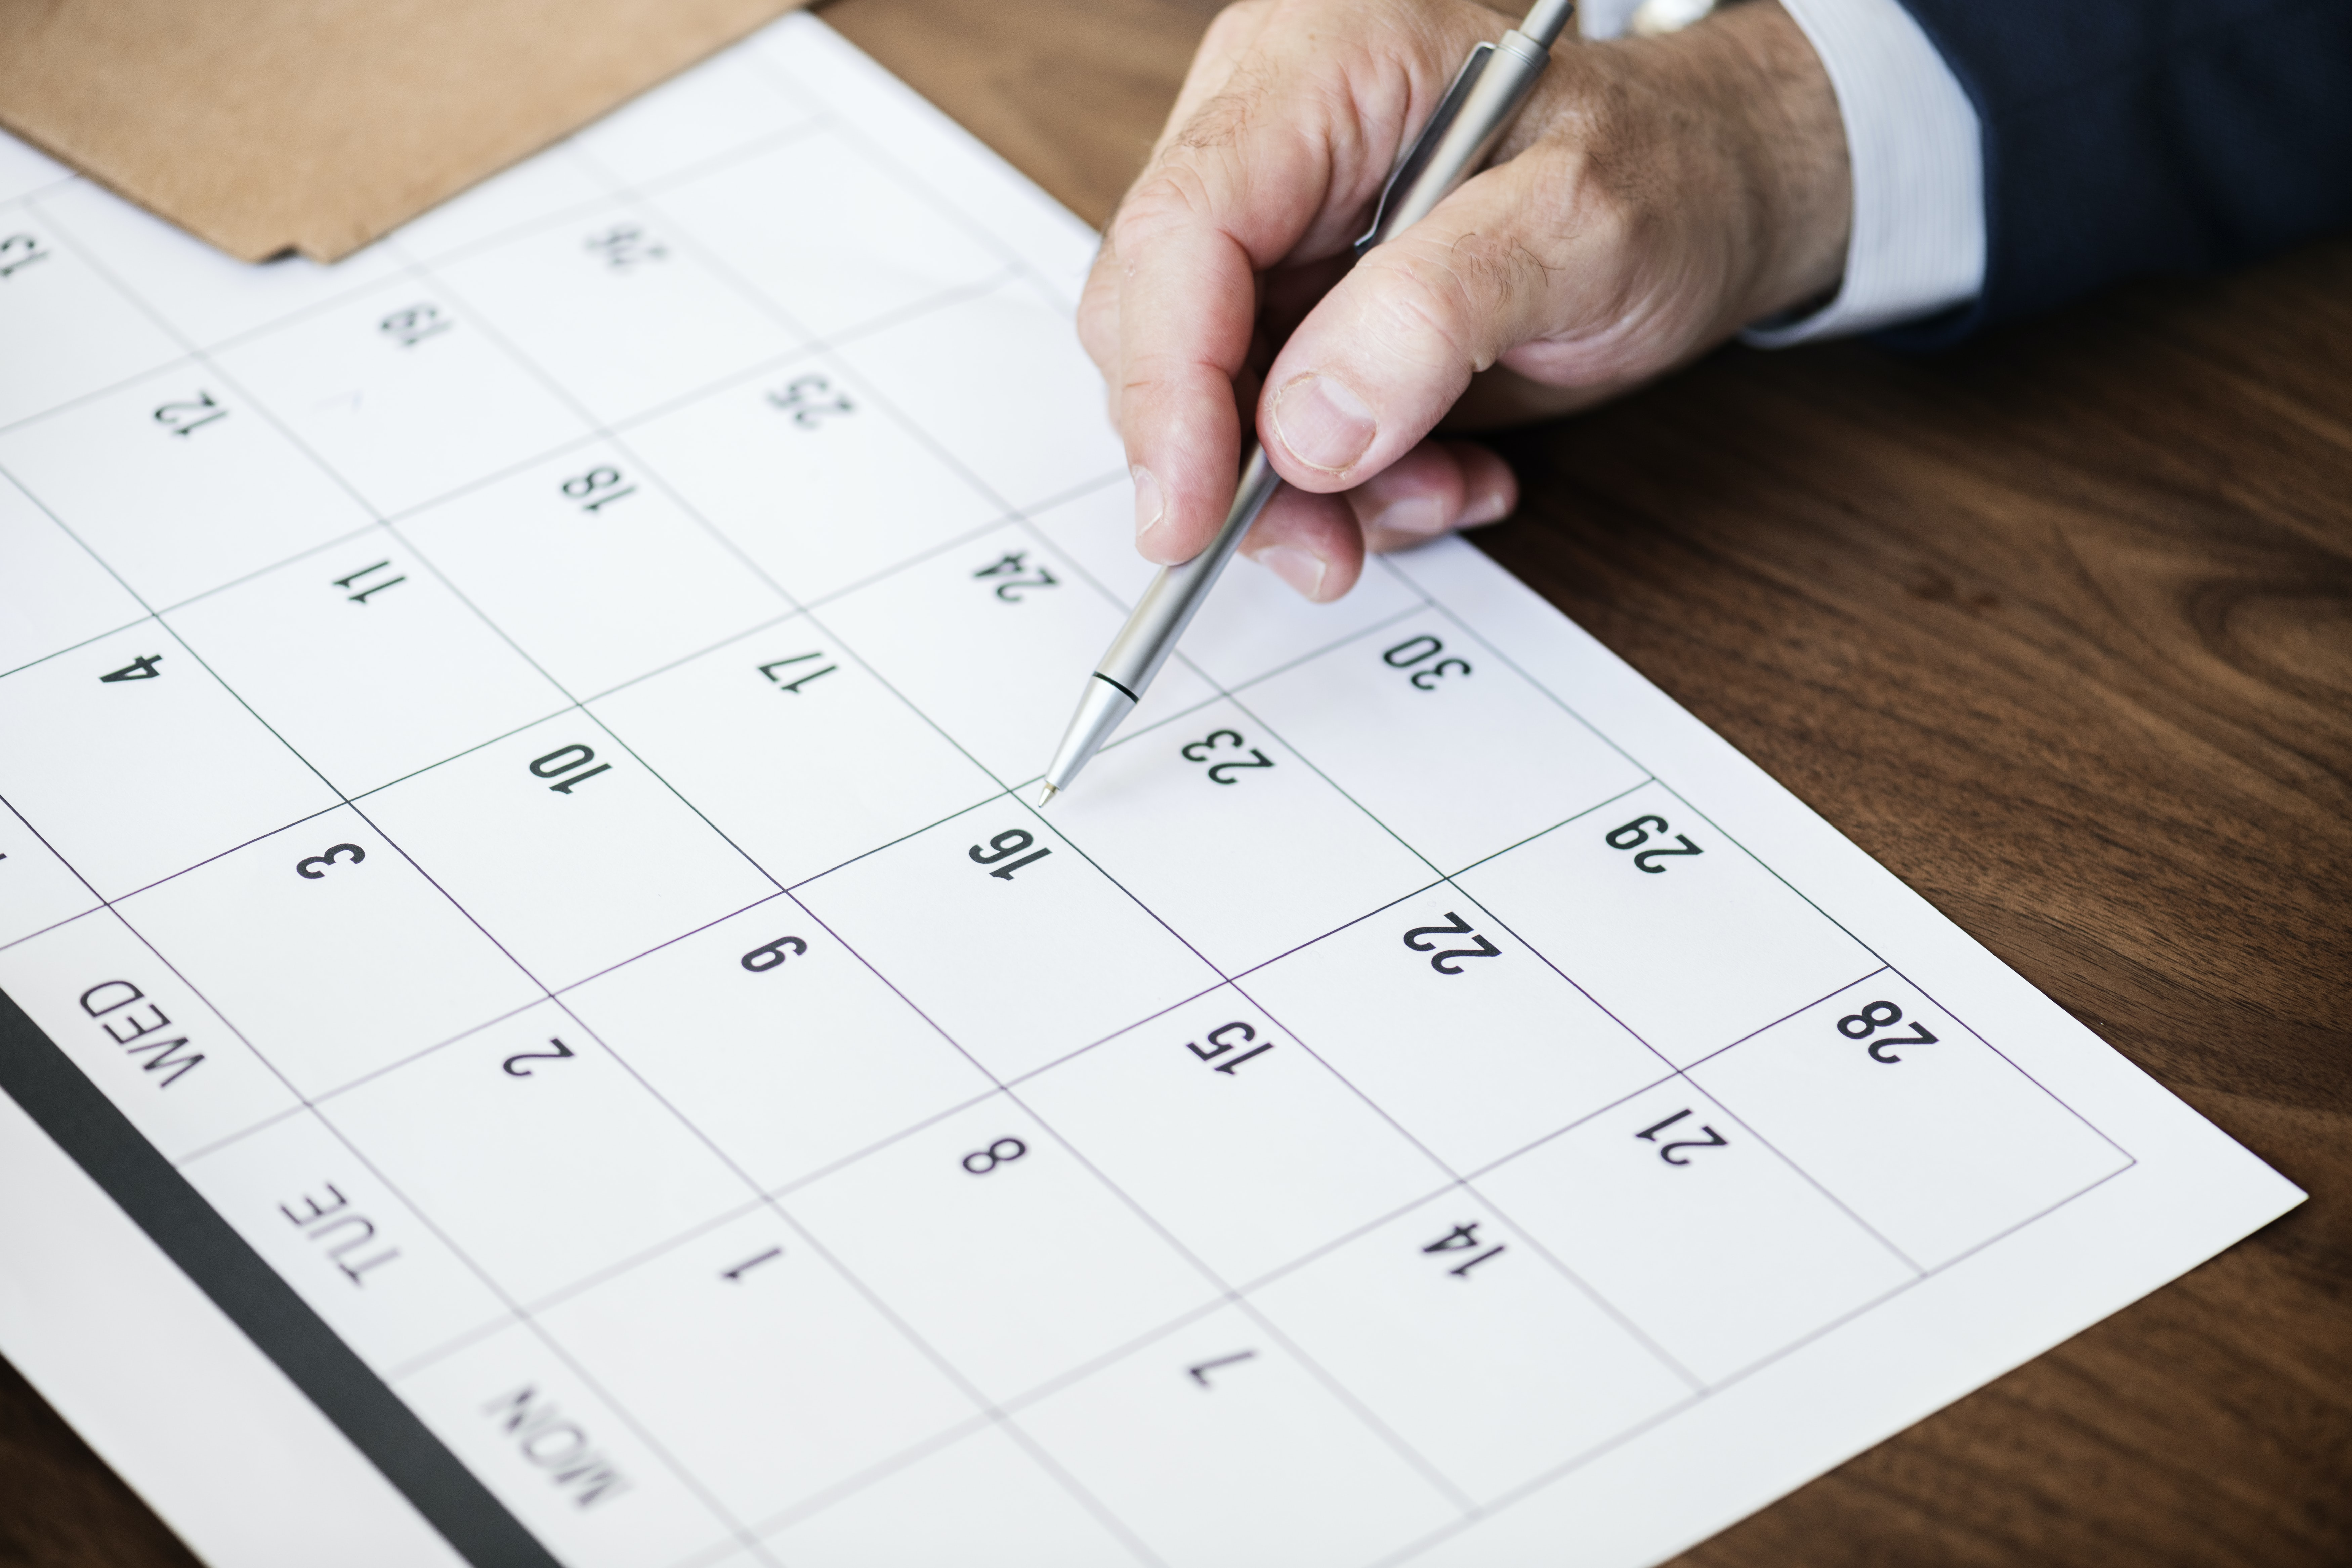 man holding pen pointing on calendar